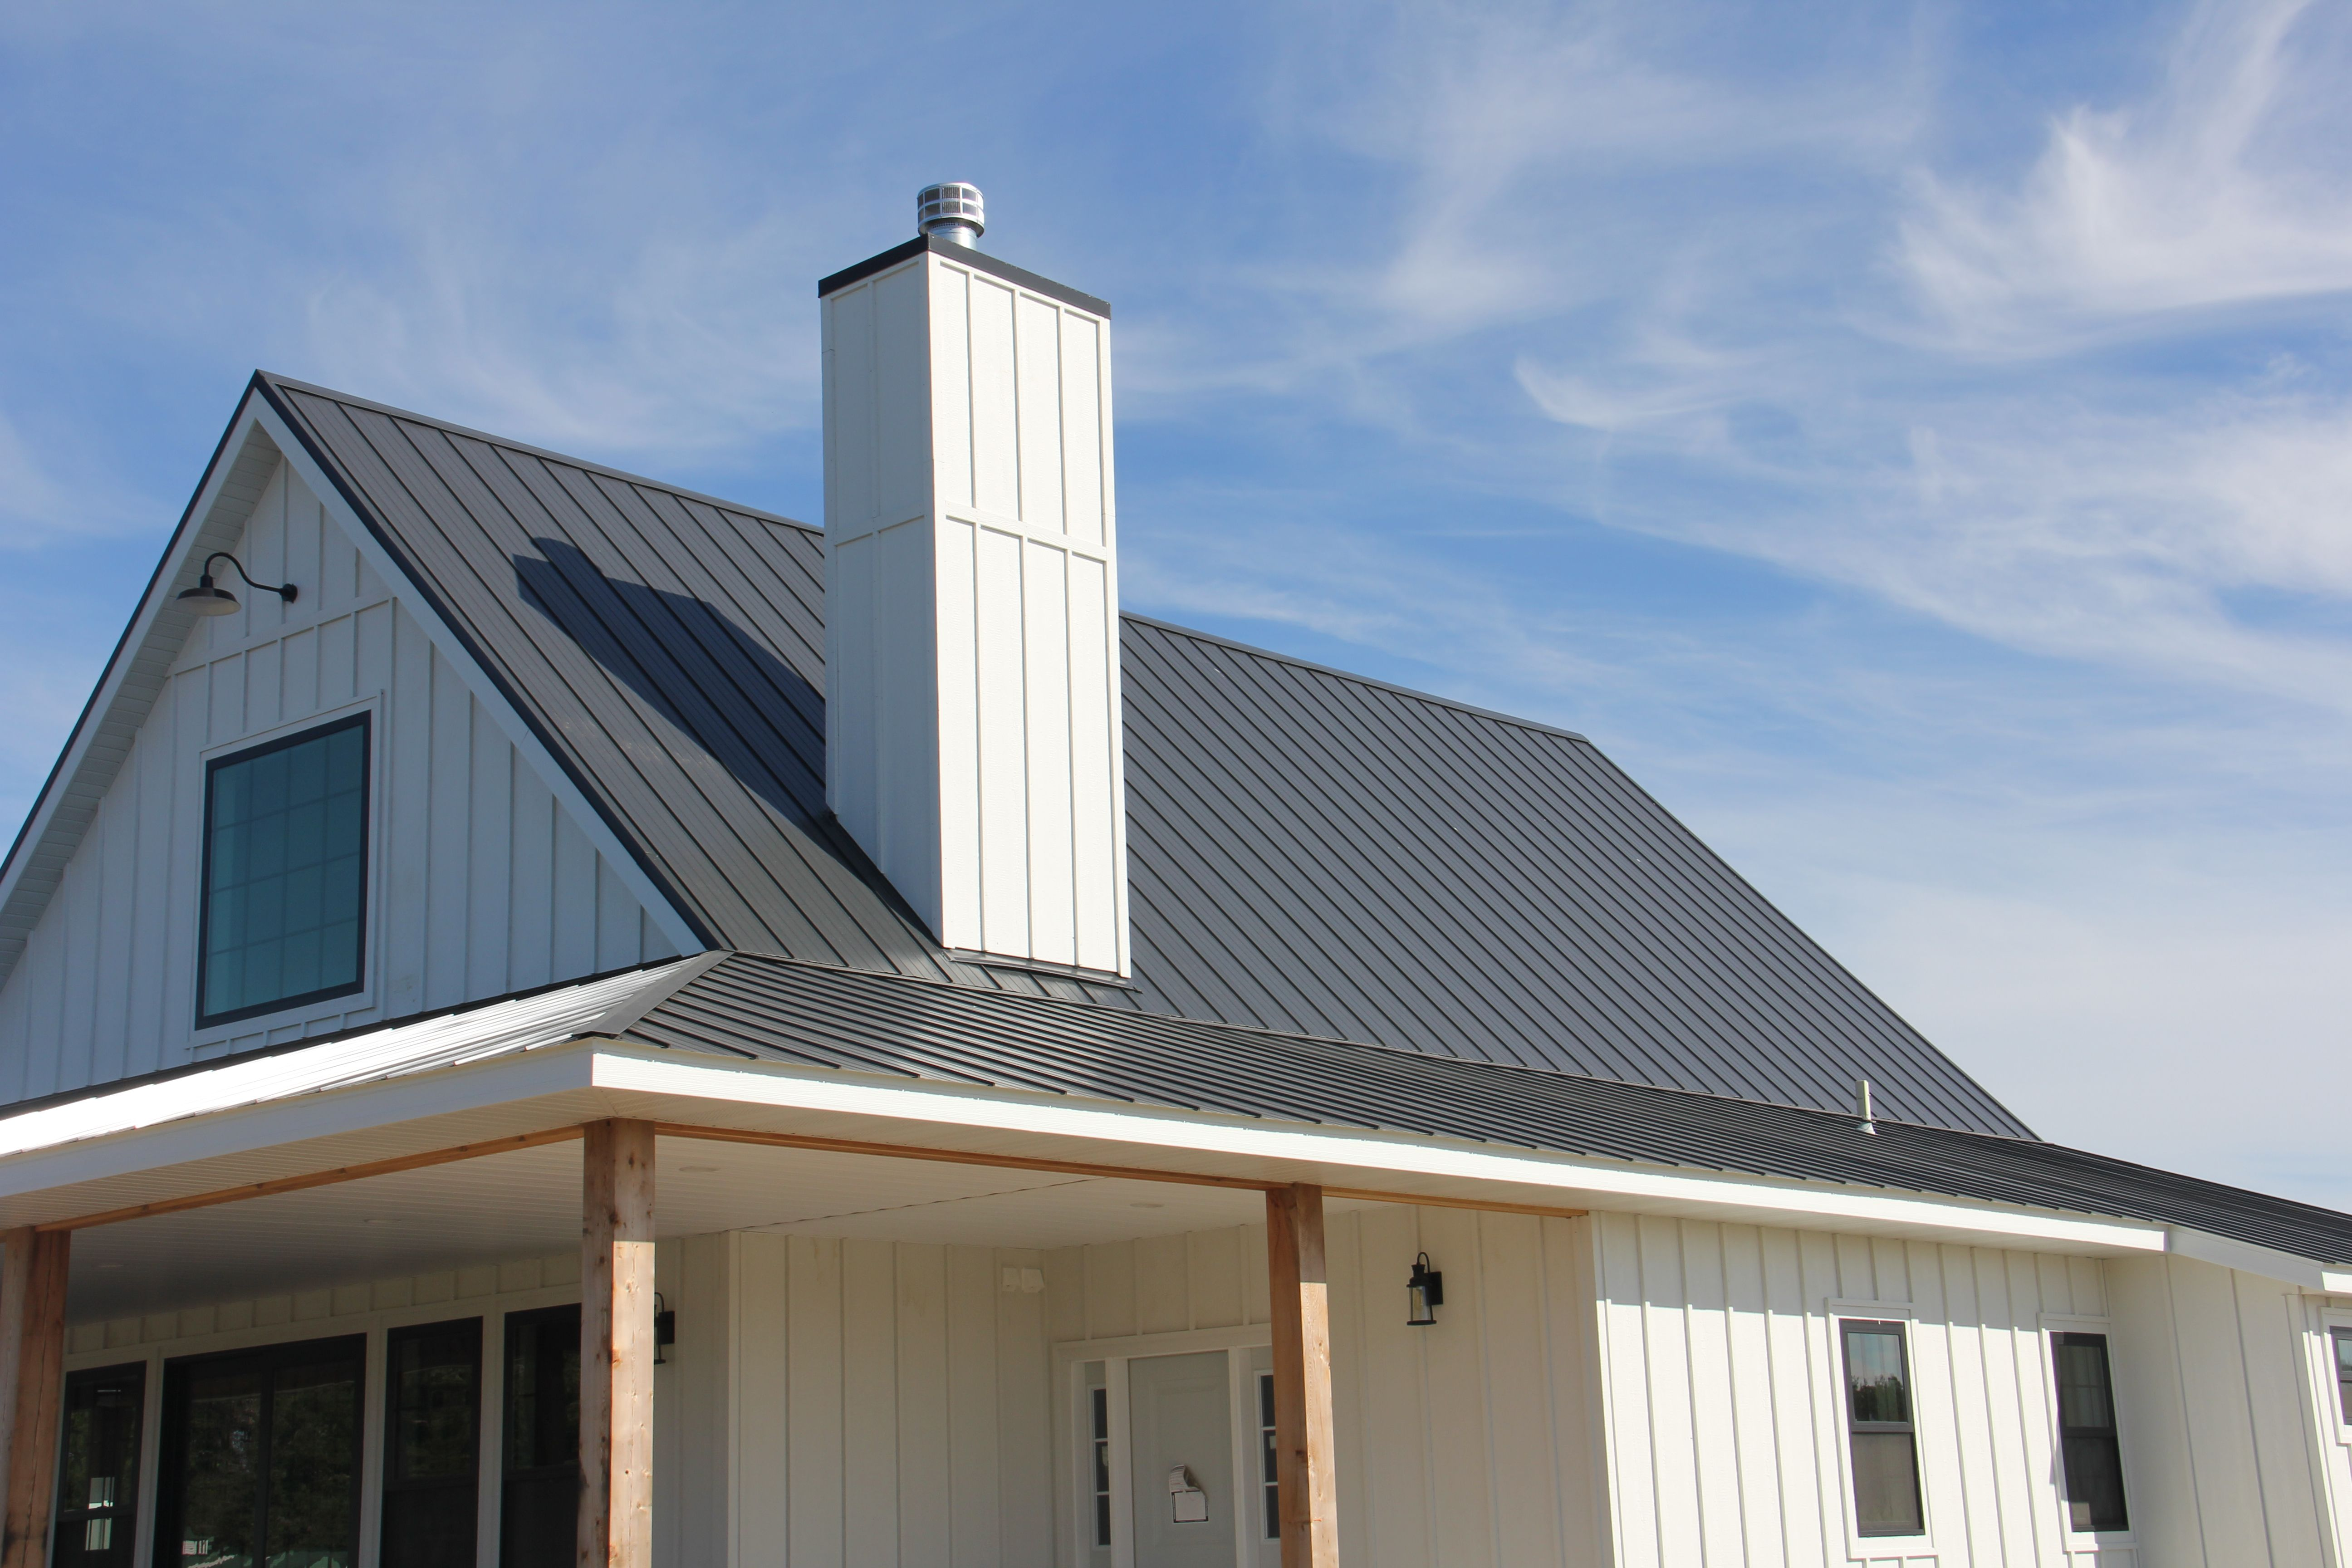 This Distinctive Black Pro Snap Roof Will Stand The Test Of Time While Saving Energy Costs Residential Steel Roofing Steel Roofing Steel Siding